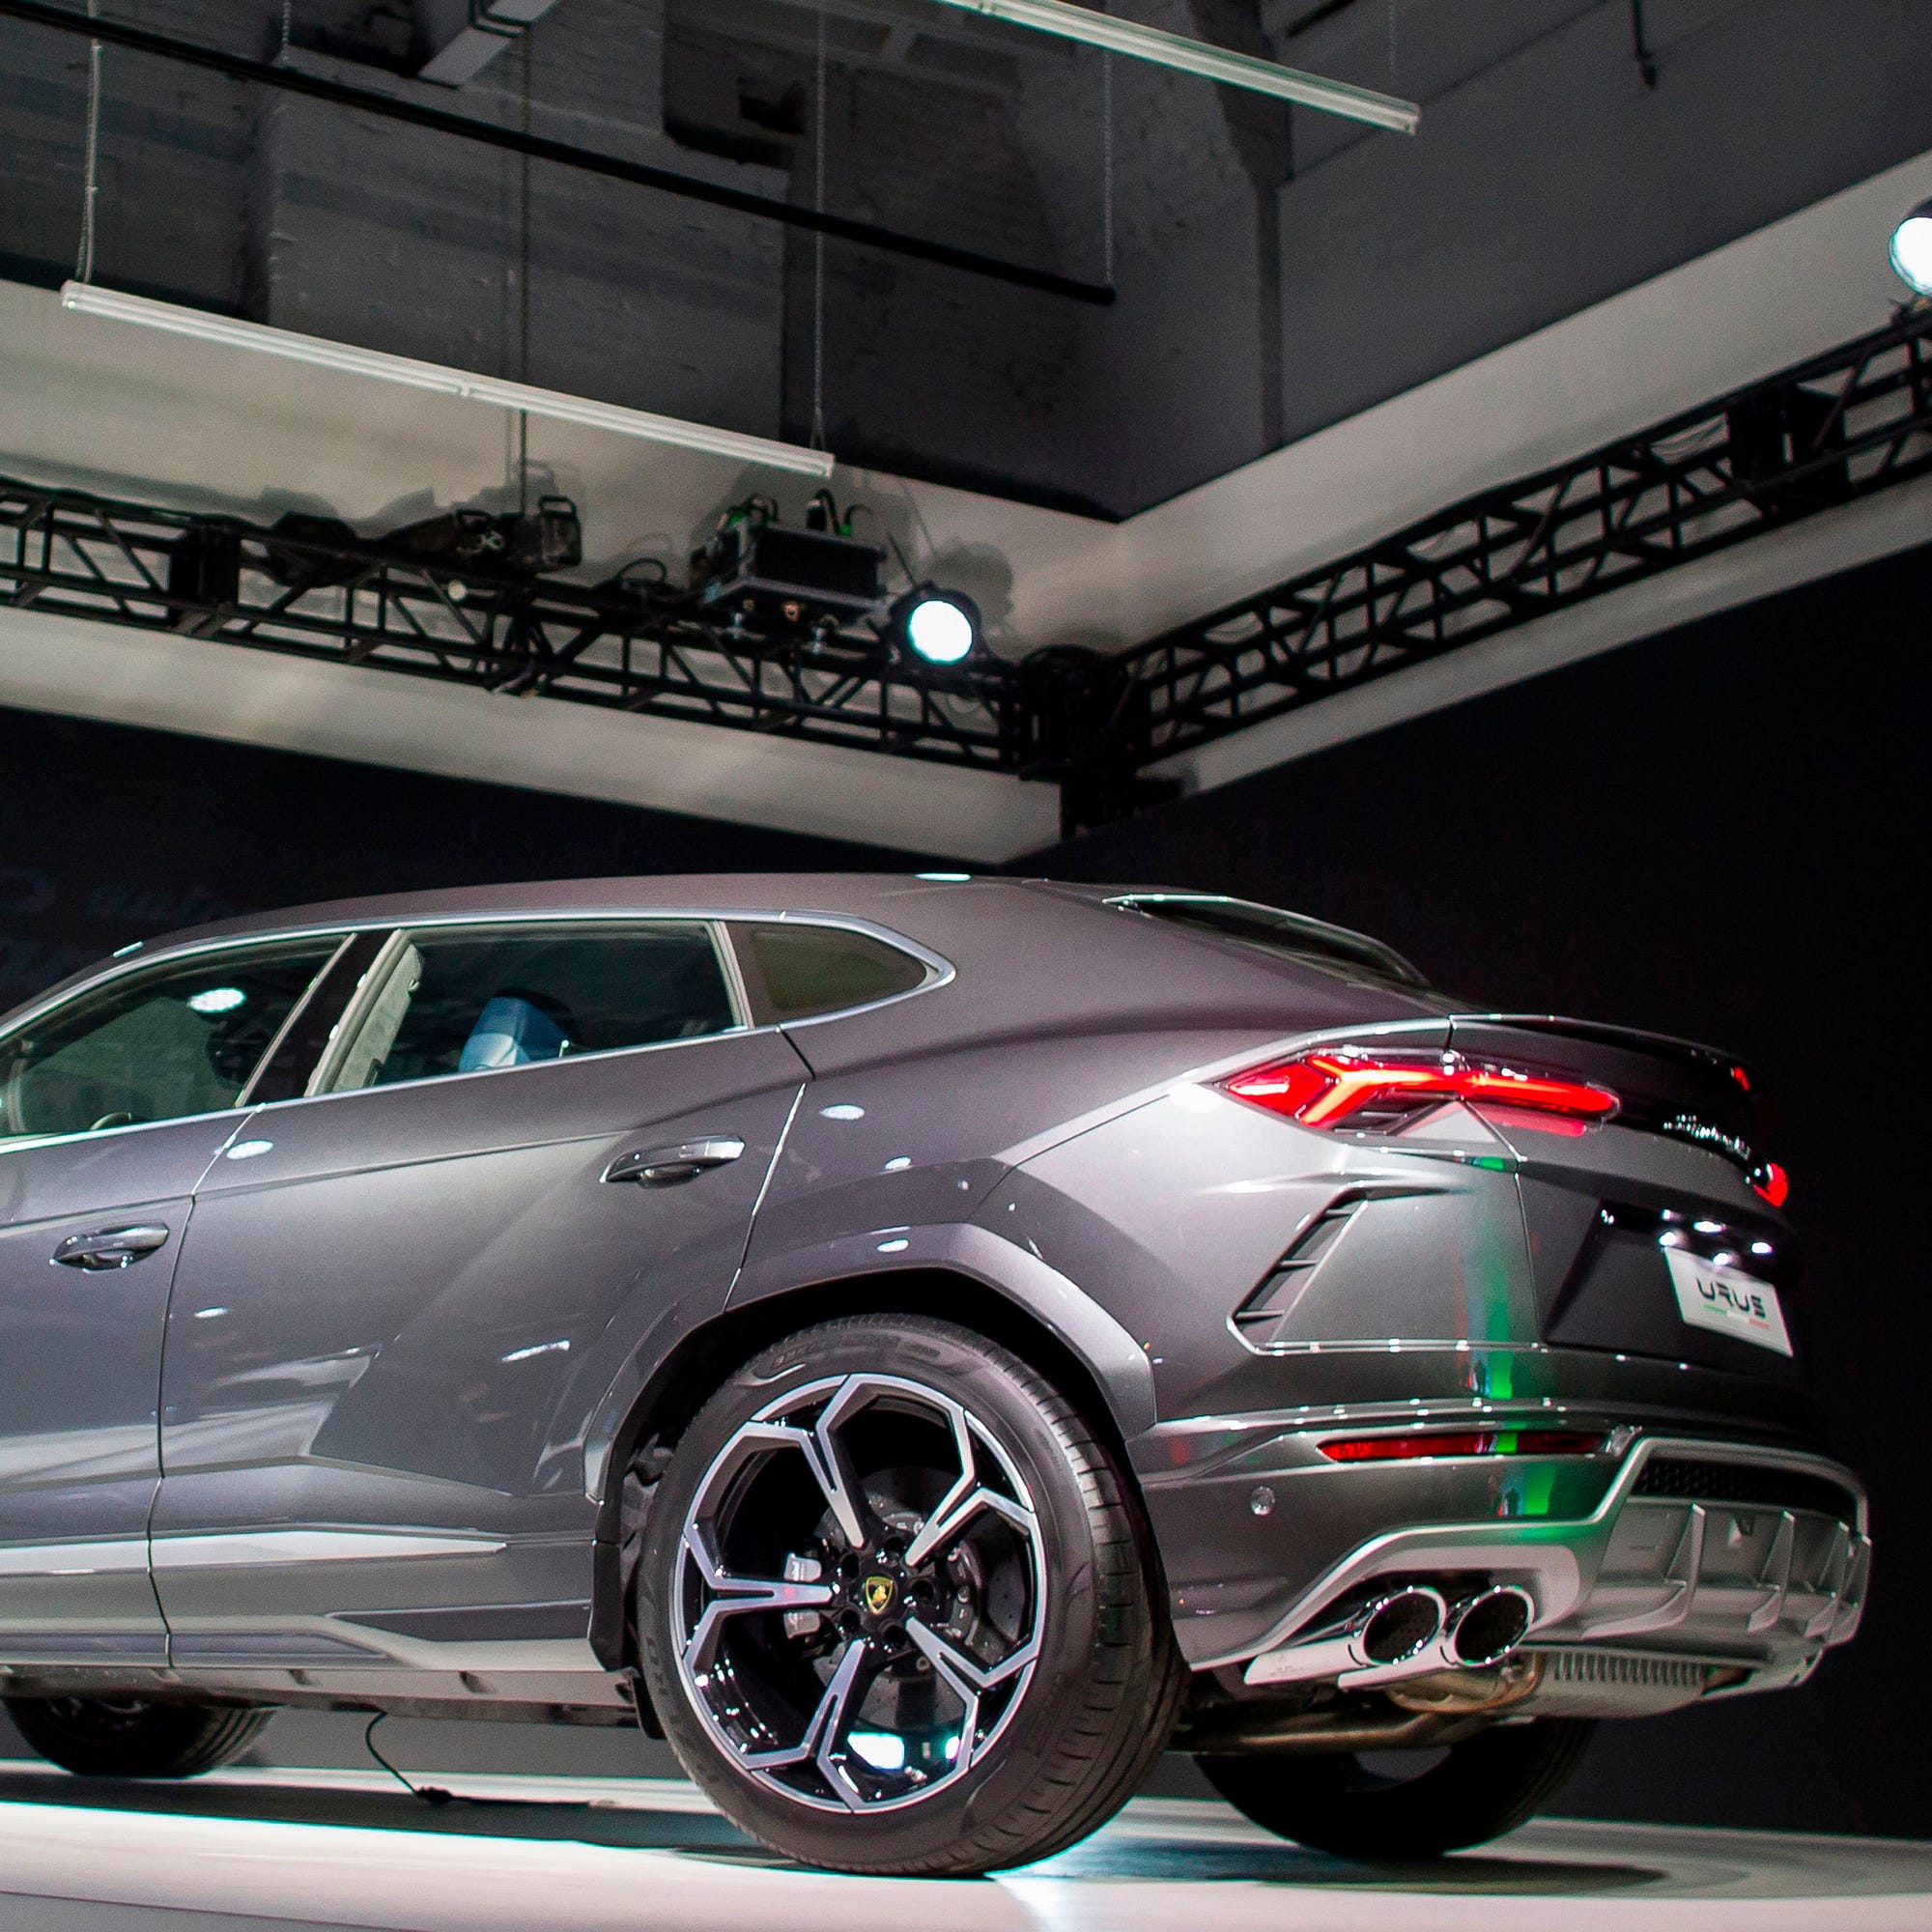 The new Lamborghini Urus SUV is unveiled Jan. 15, 2018, at a press event during the 2018 North American International Auto Show in Detroit.